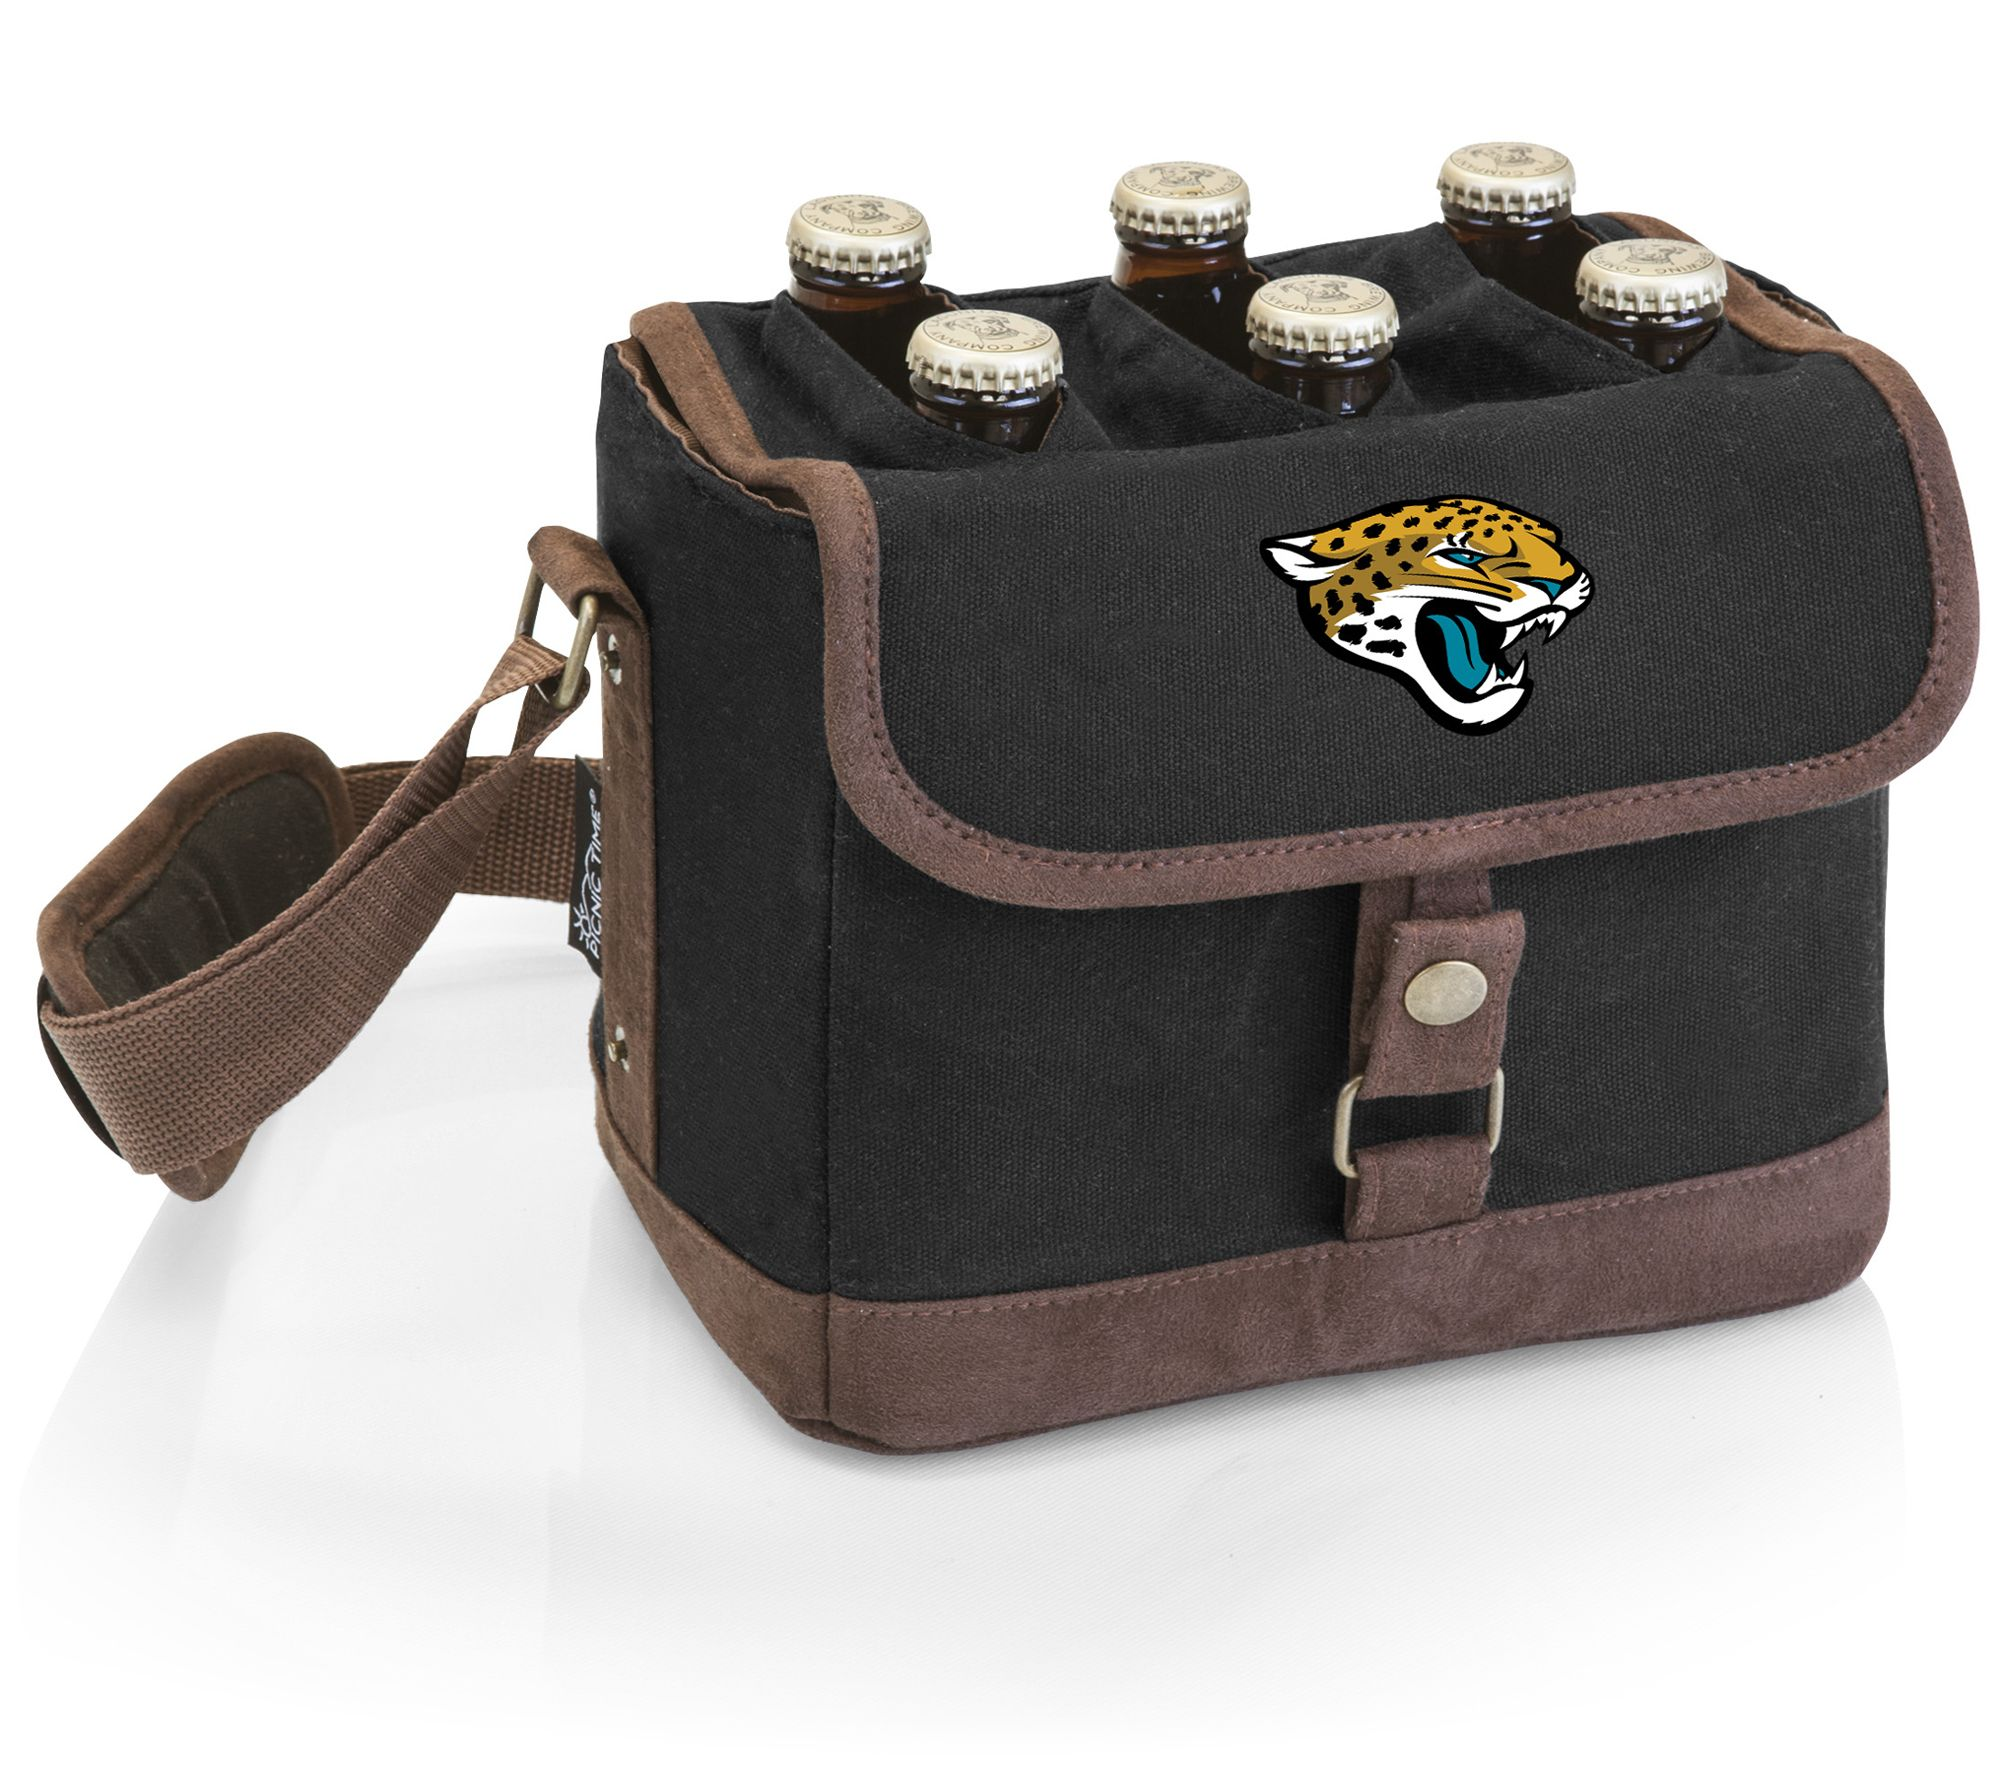 Homegating 101: Must-Haves to Celebrate Your Team